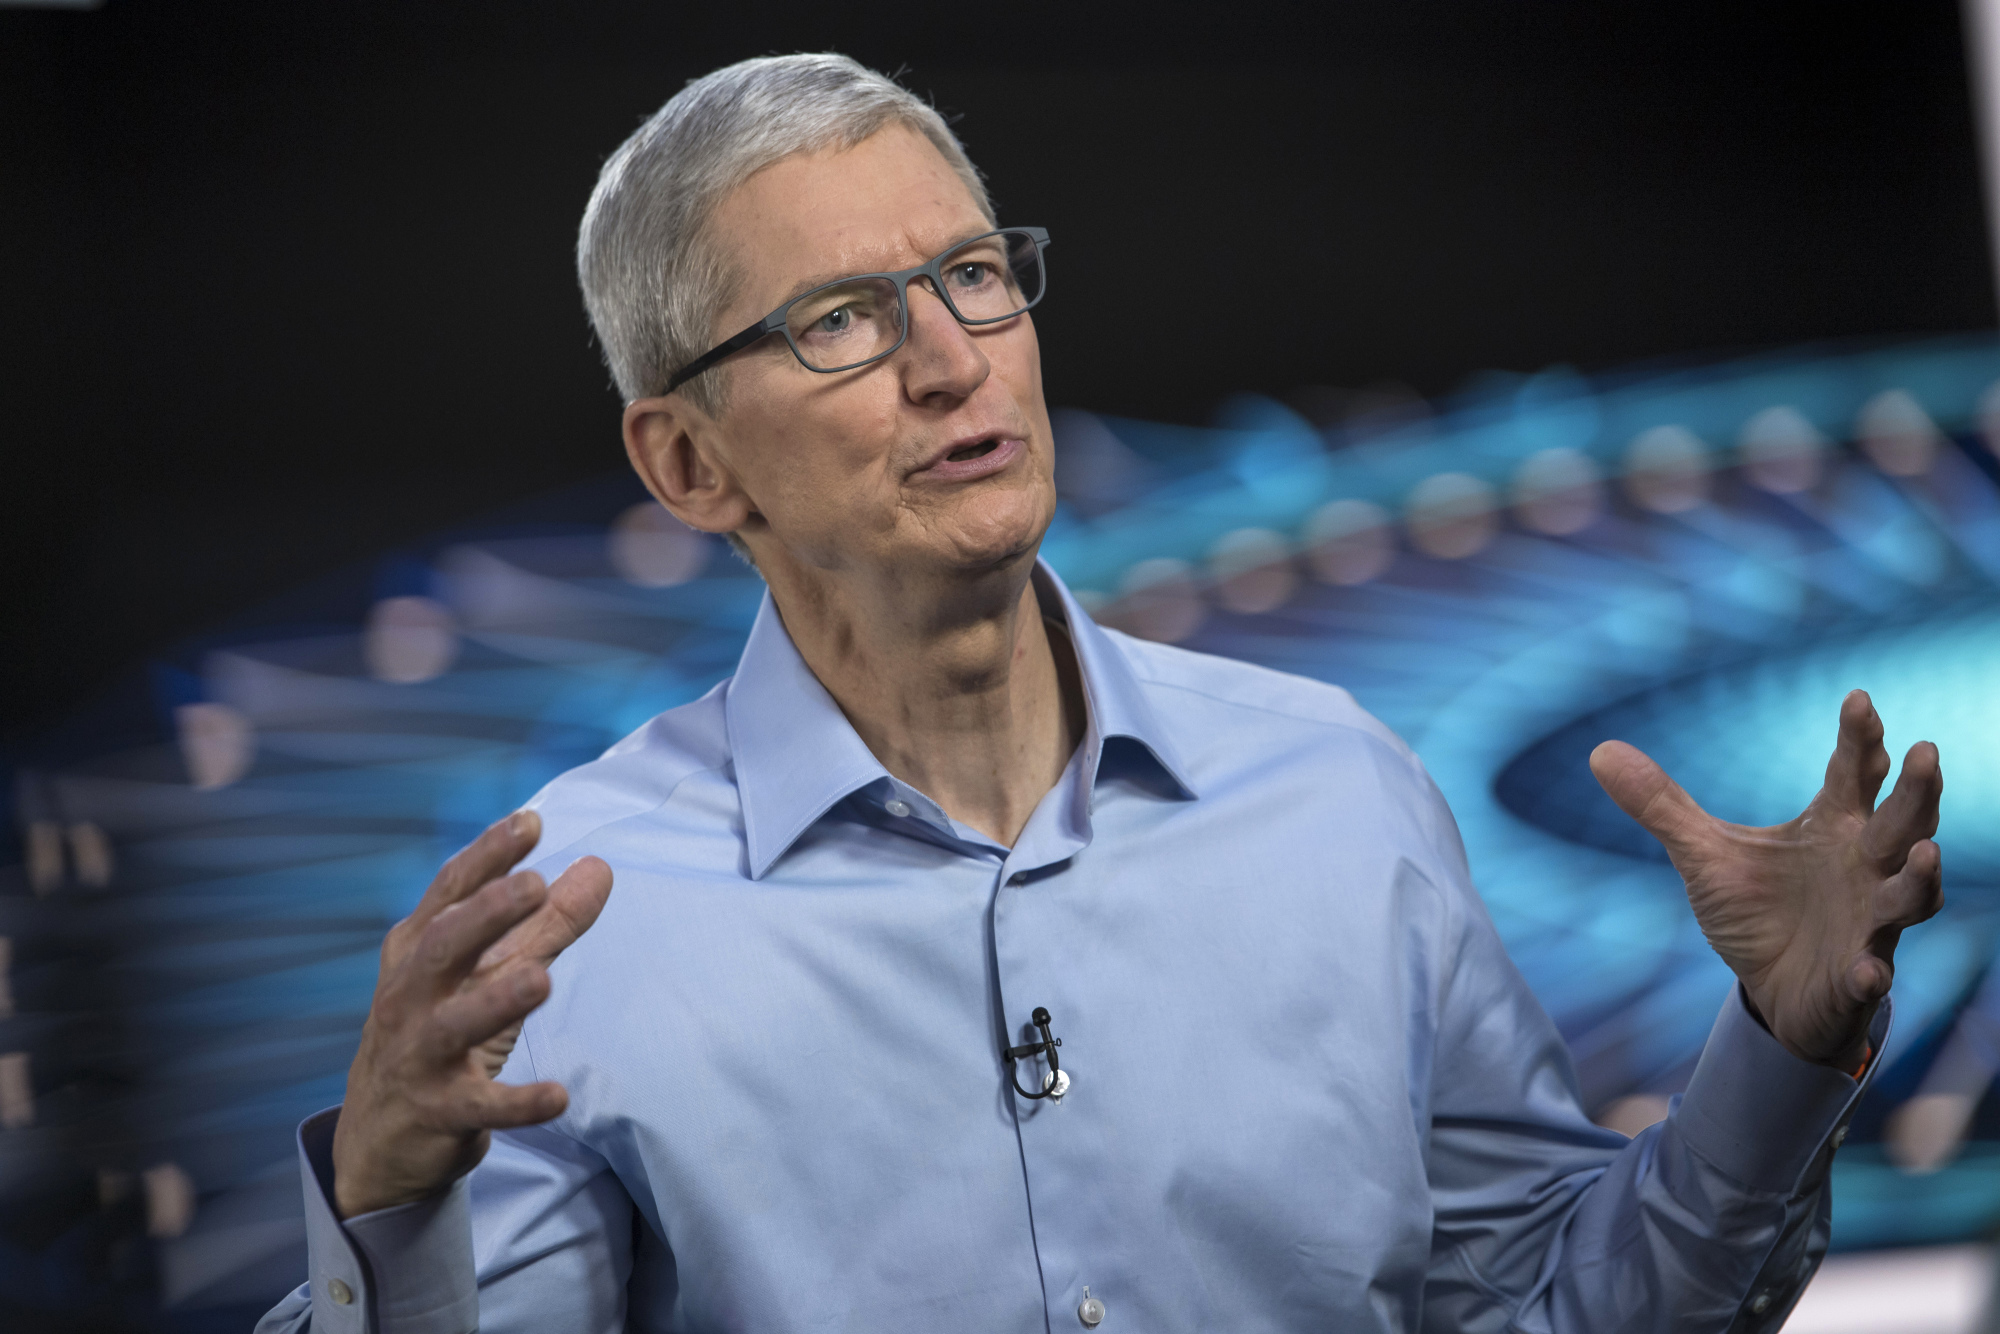 Apple CEO Tim Cook Self-driving cars